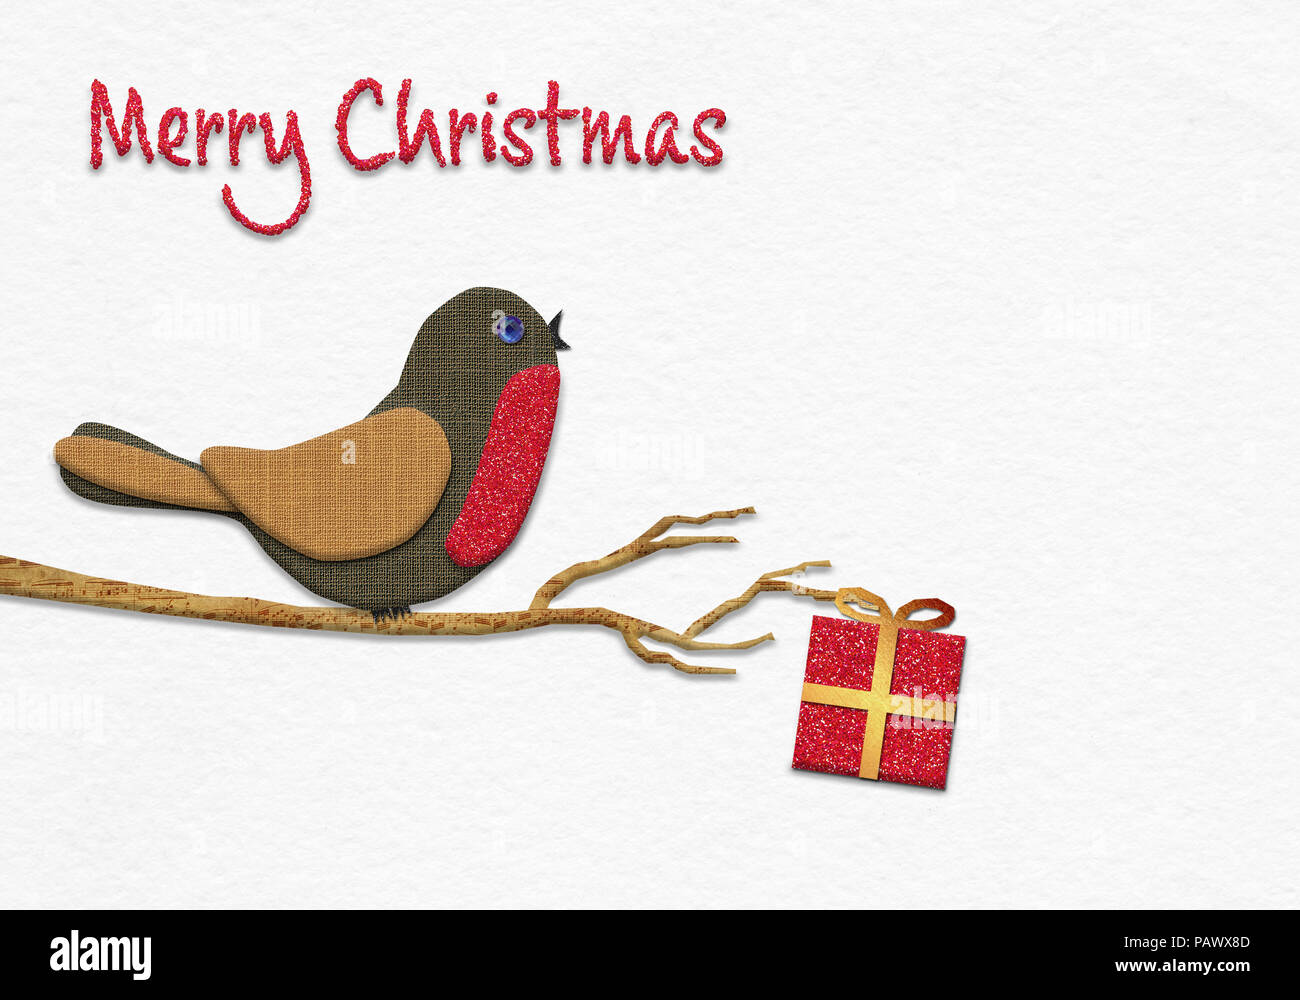 Merry Christmas message, Christmas Robin handmade from paper collage style concept illustration on handmade water colour paper background - Stock Image